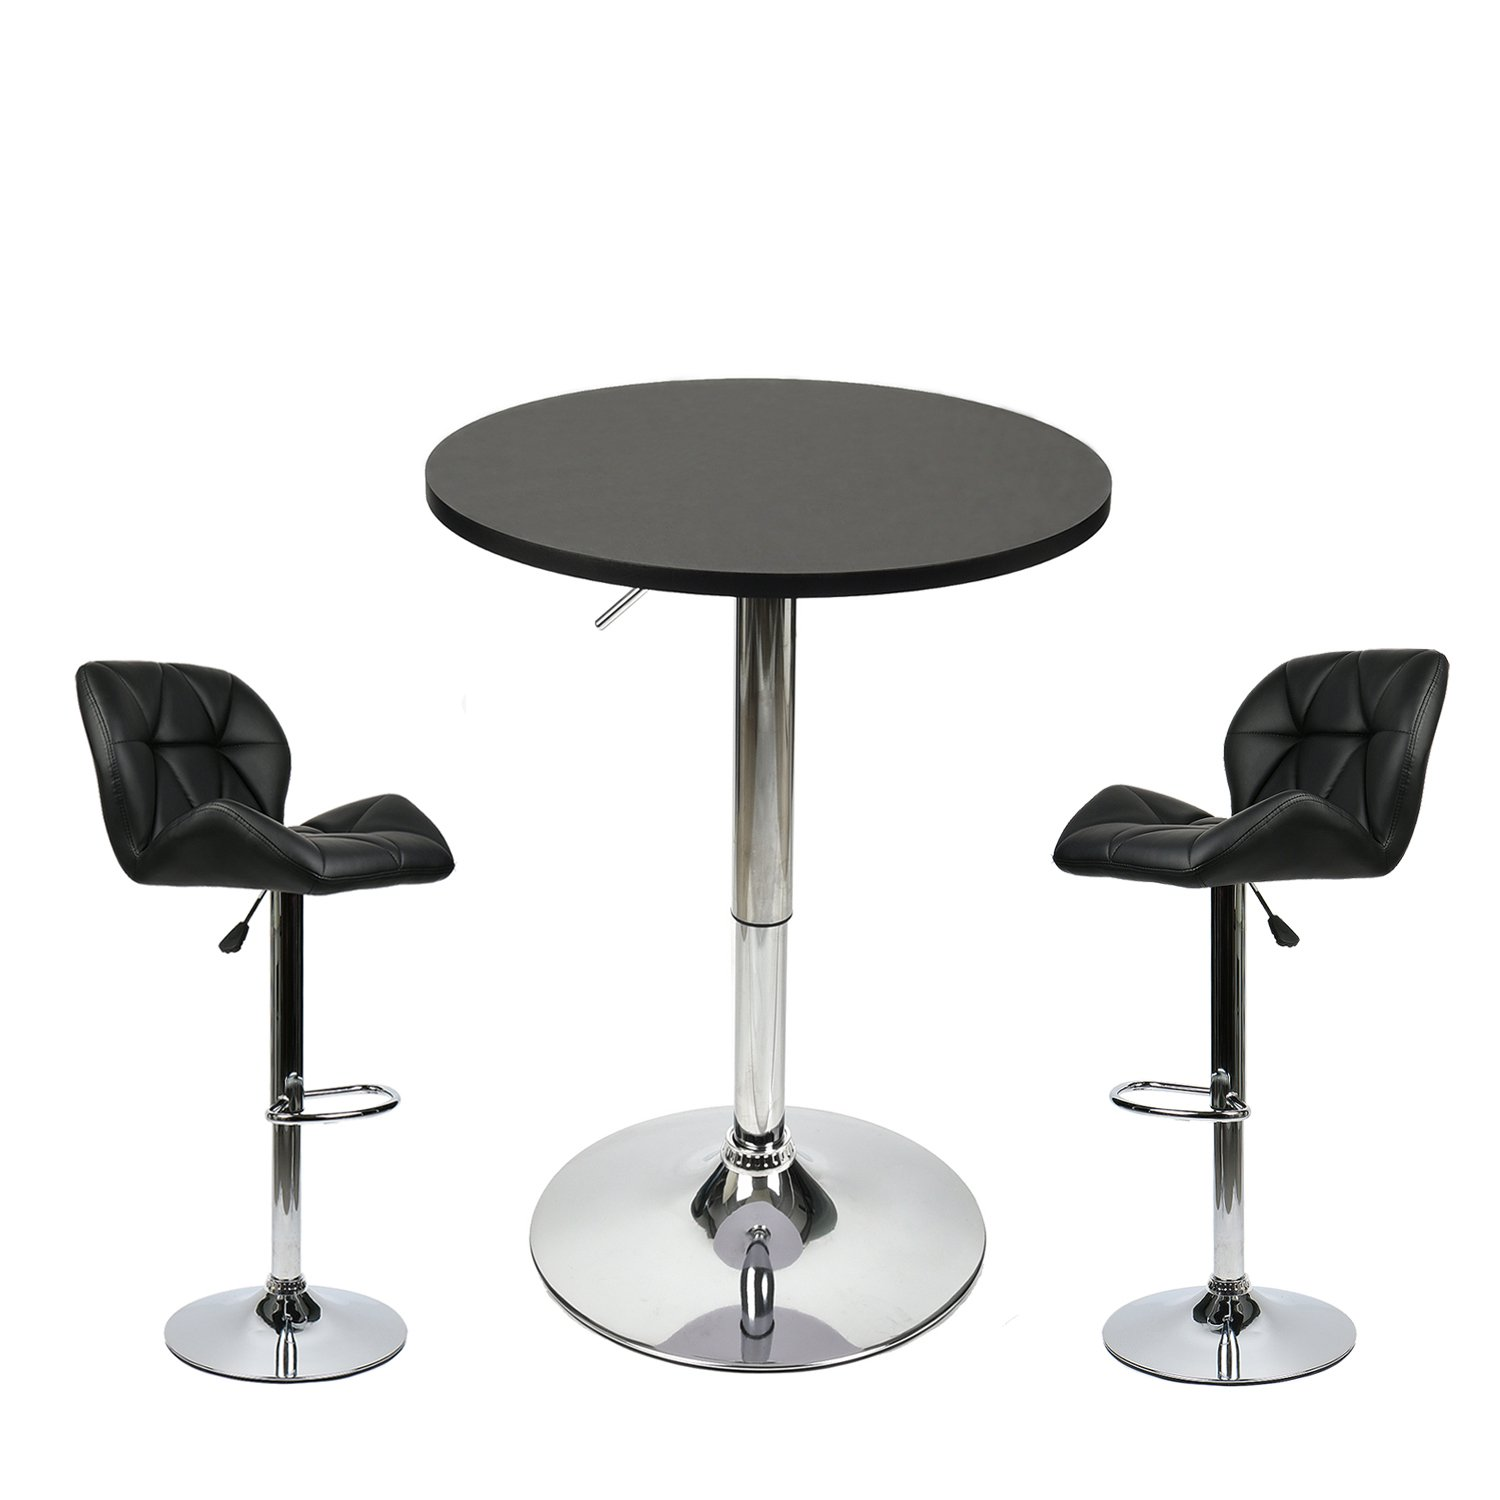 35 Inches Height Pub Table Round Black Mdf Top, with 2 Black Contemporary Chrome Air Lift Barstool Leather Padded Adjustable Swivel Stools